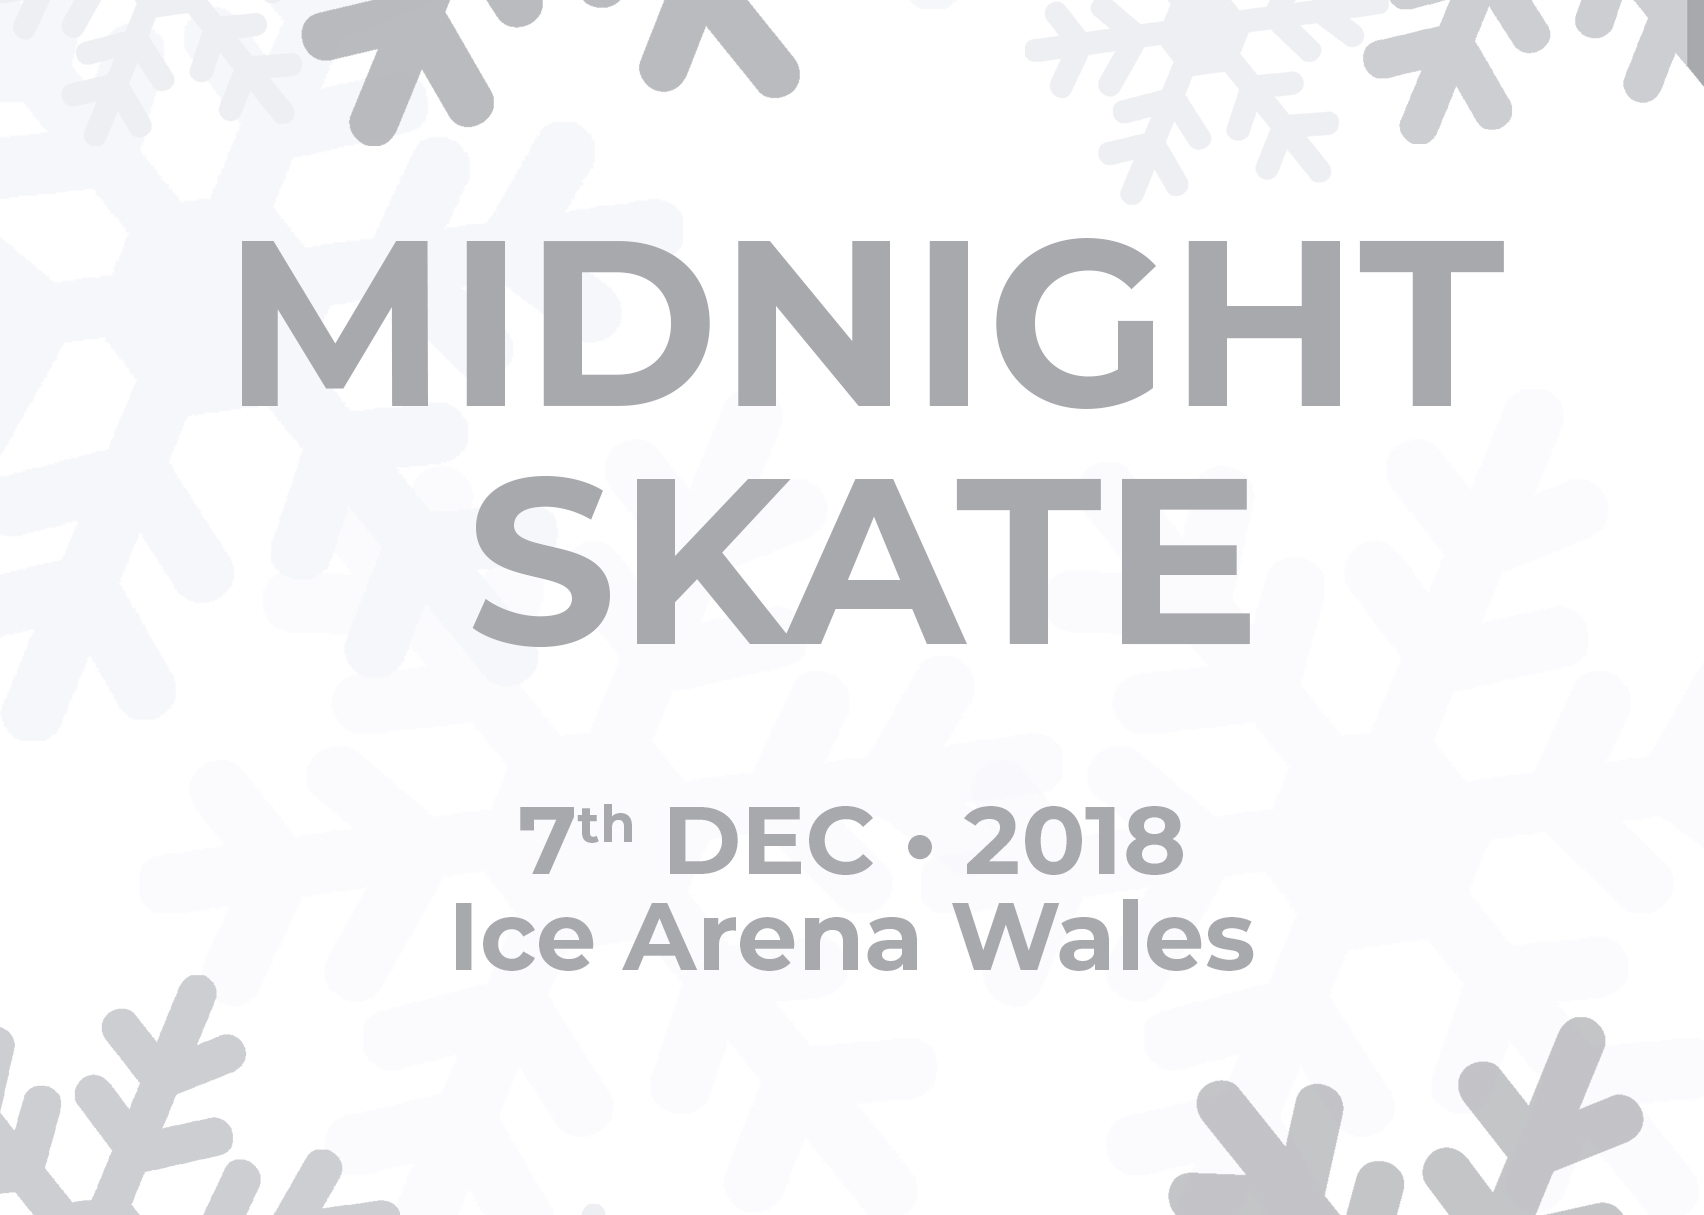 Midnight Skate 2018